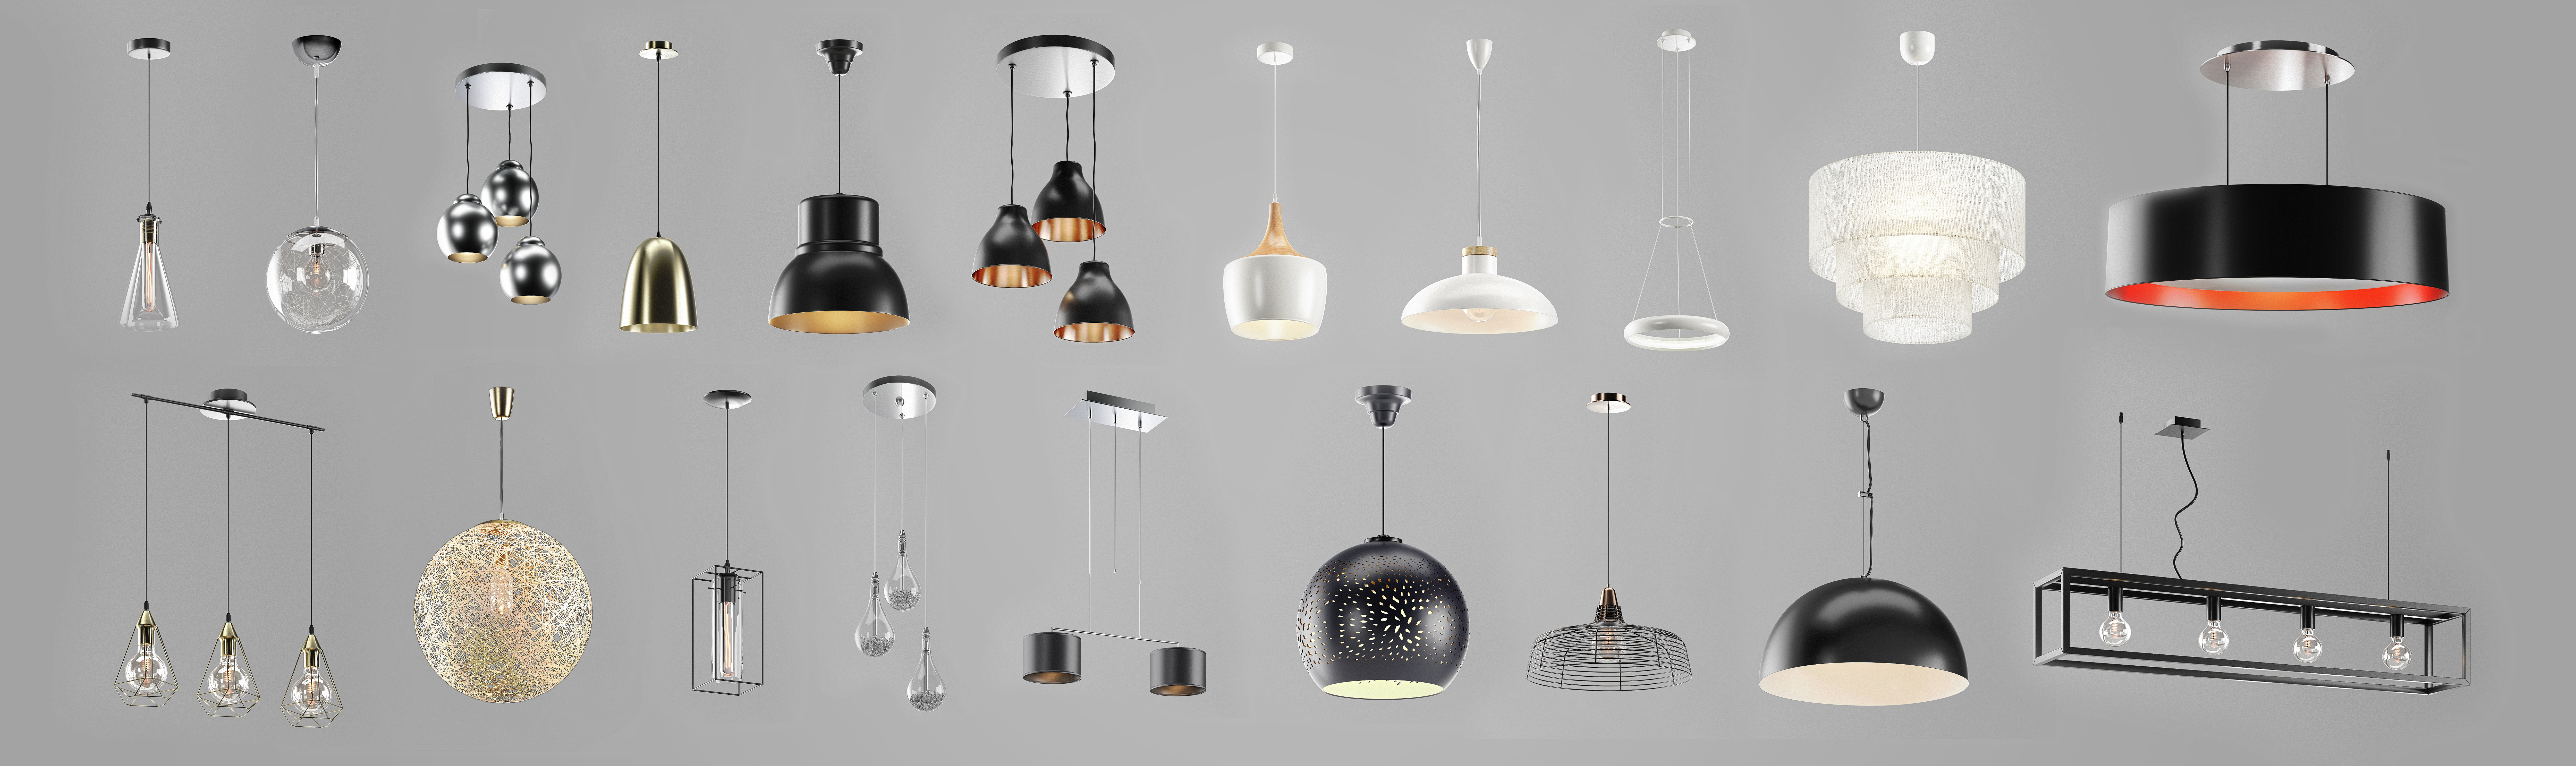 Lamps Collection